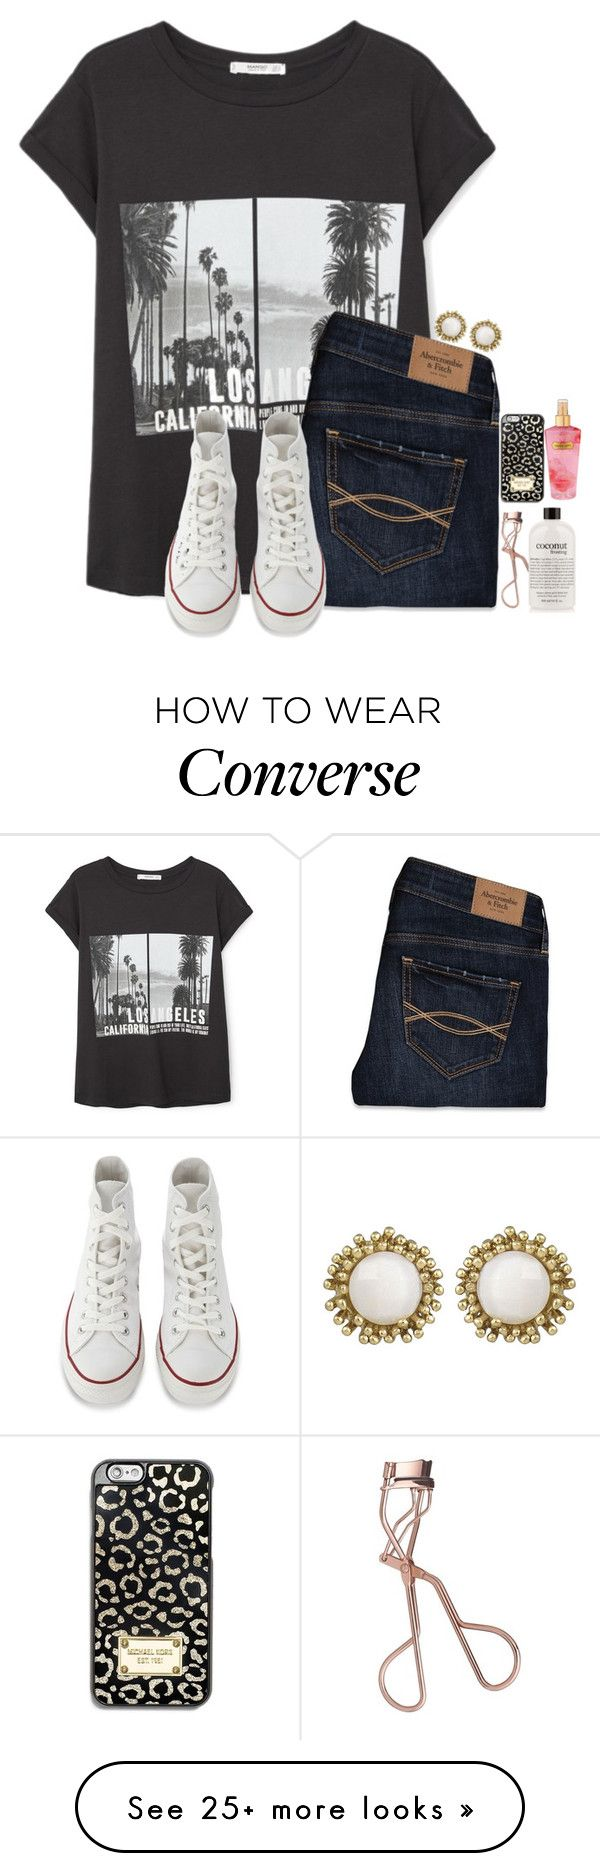 """I'm not a shopaholic, I'm helping the economy "" by hailstails on Polyvore featuring MANGO, Abercrombie & Fitch, Converse, Charlotte Tilbury, philosophy, Kendra Scott, MICHAEL Michael Kors and Victoria's Secret"